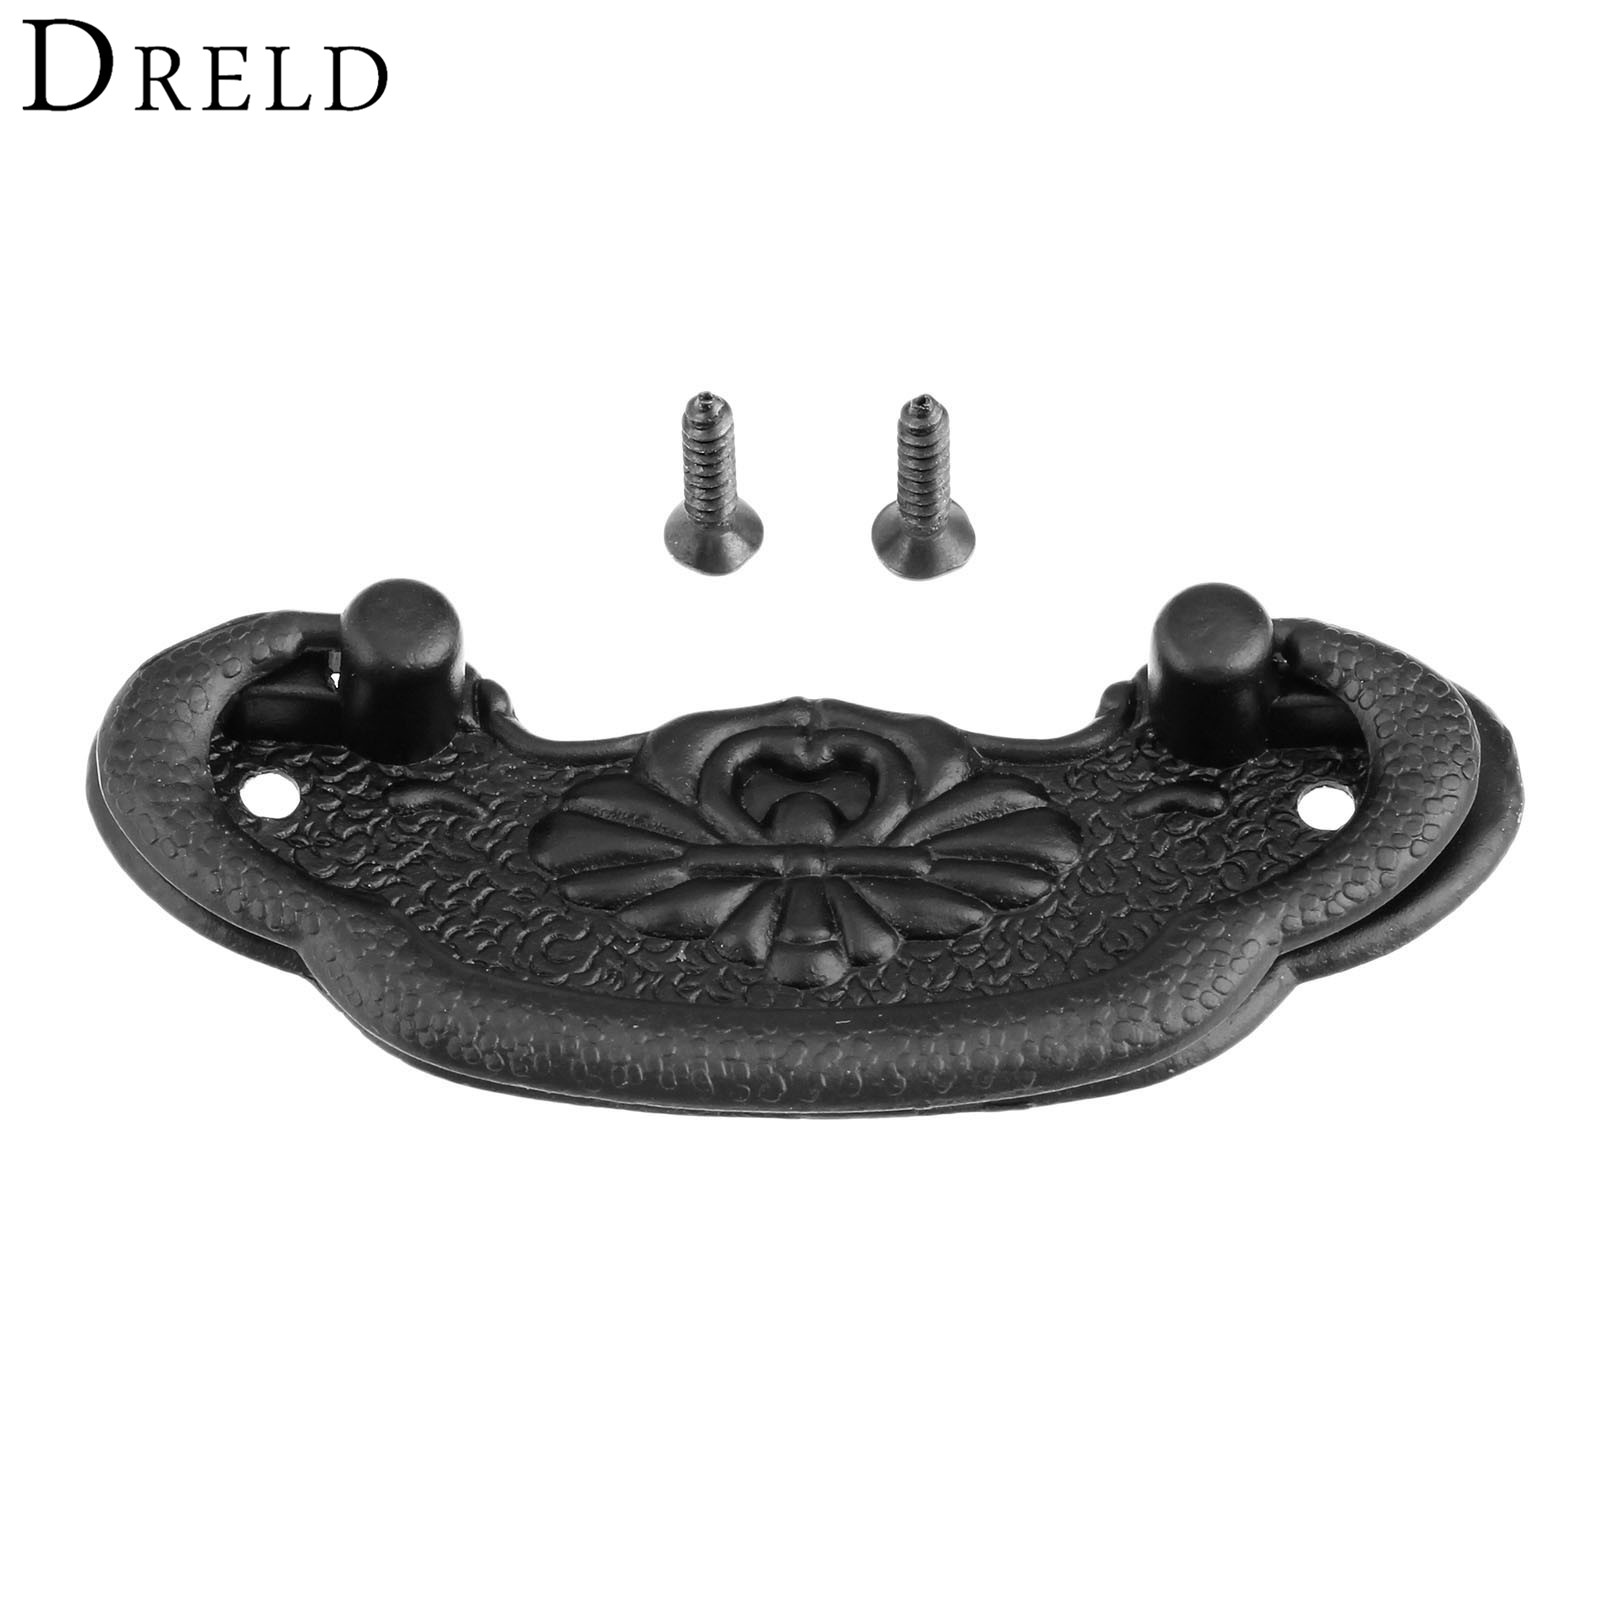 DRELD 1Pc Antique Furniture Handle Black Cabinet Knobs and Handles Kitchen Drawer Cupboard Pull Door Handles Furniture Fittings dreld 96 128 160mm furniture handle modern cabinet knobs and handles door cupboard drawer kitchen pull handle furniture hardware